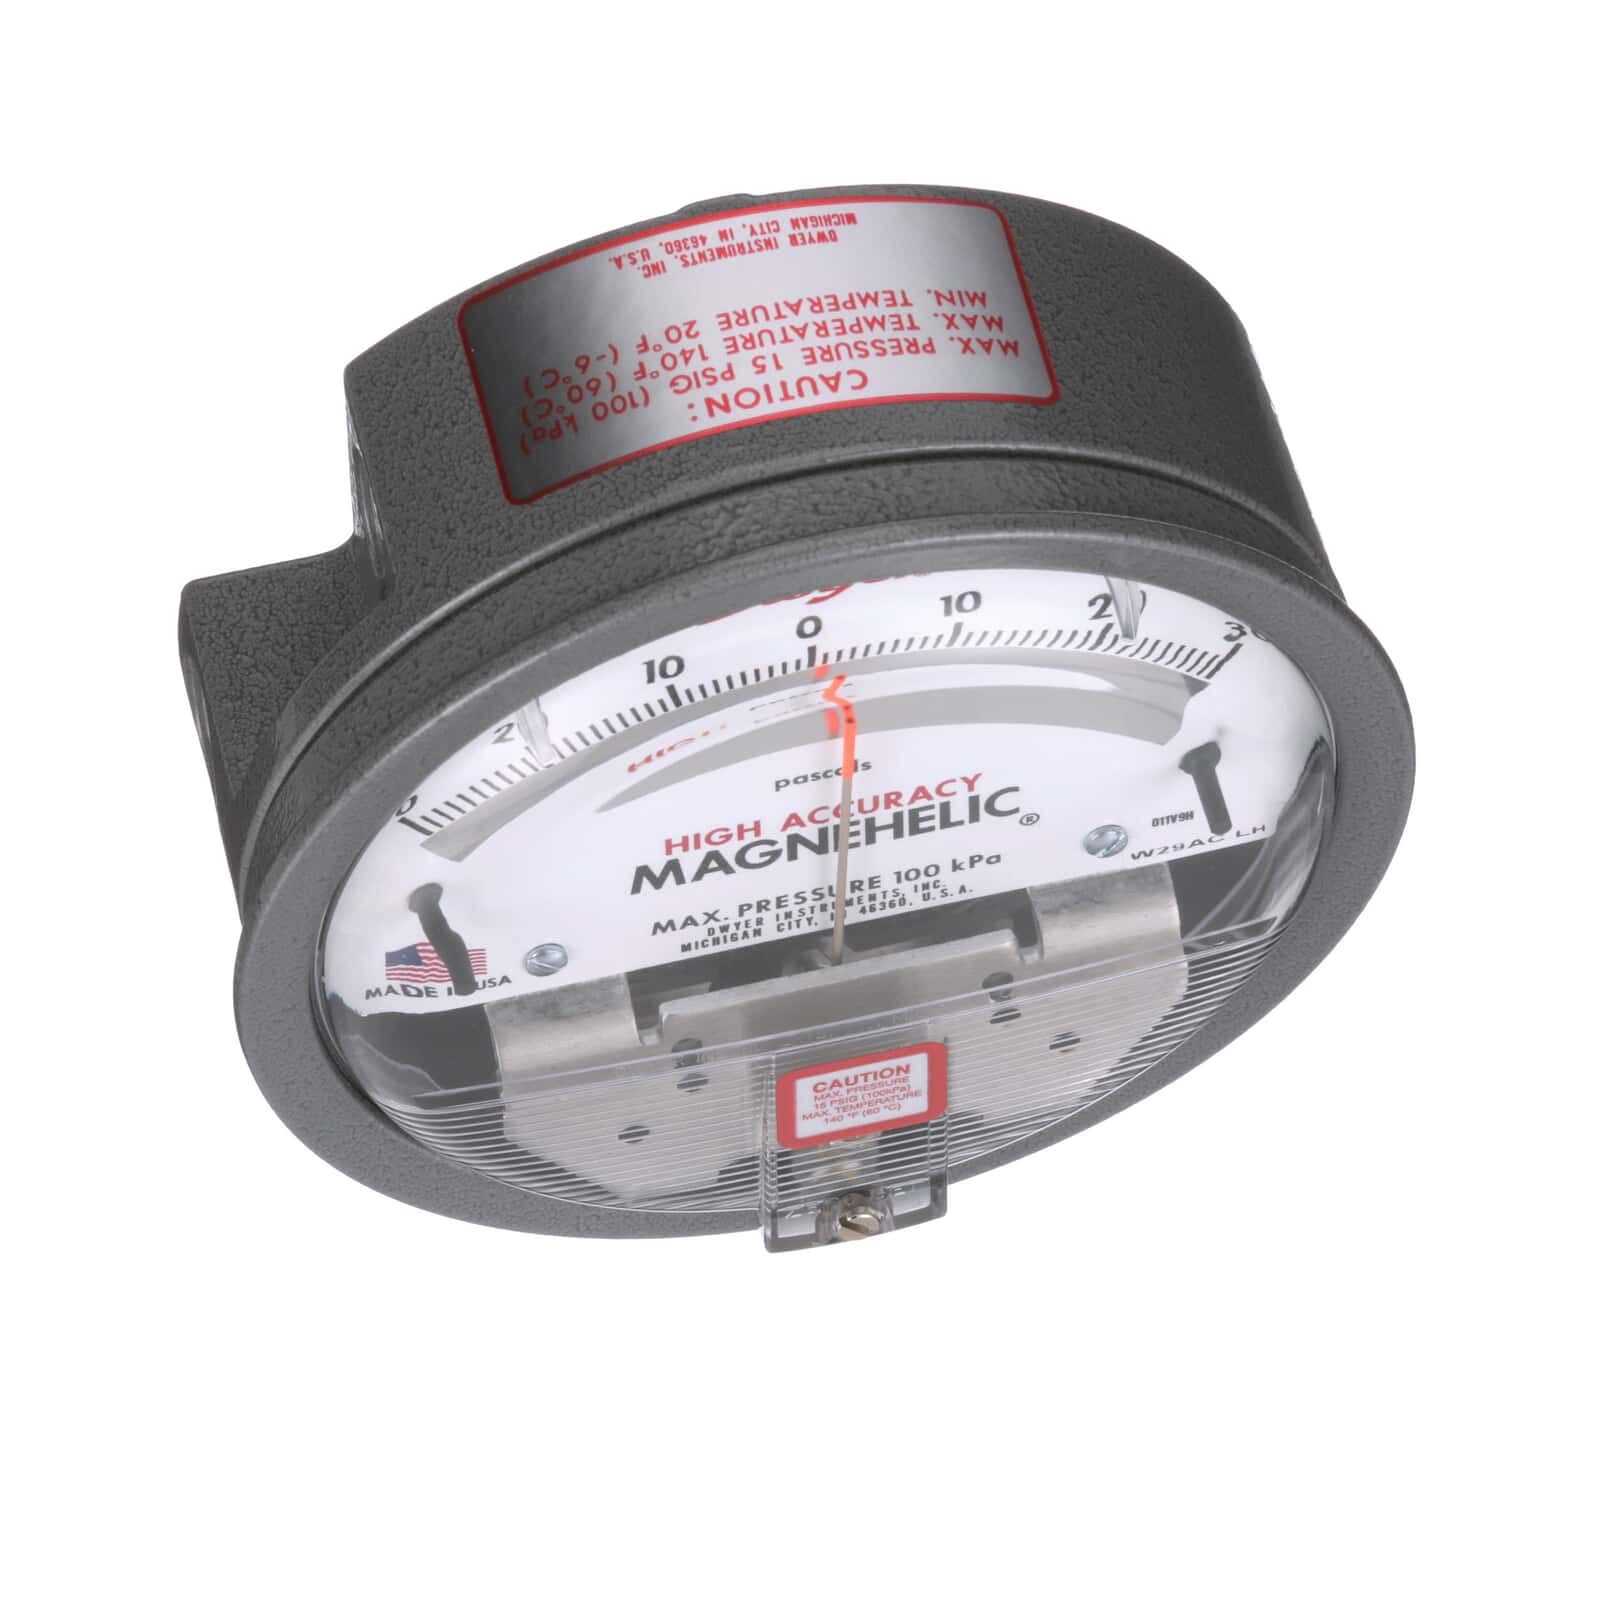 Series 2000 Magnehelic Differential Pressure Gages Is A Versatile Mobil Home Air Handler Wiring Diagram Low Gauge With Wide Choice Of 81 Models And 27 Options To